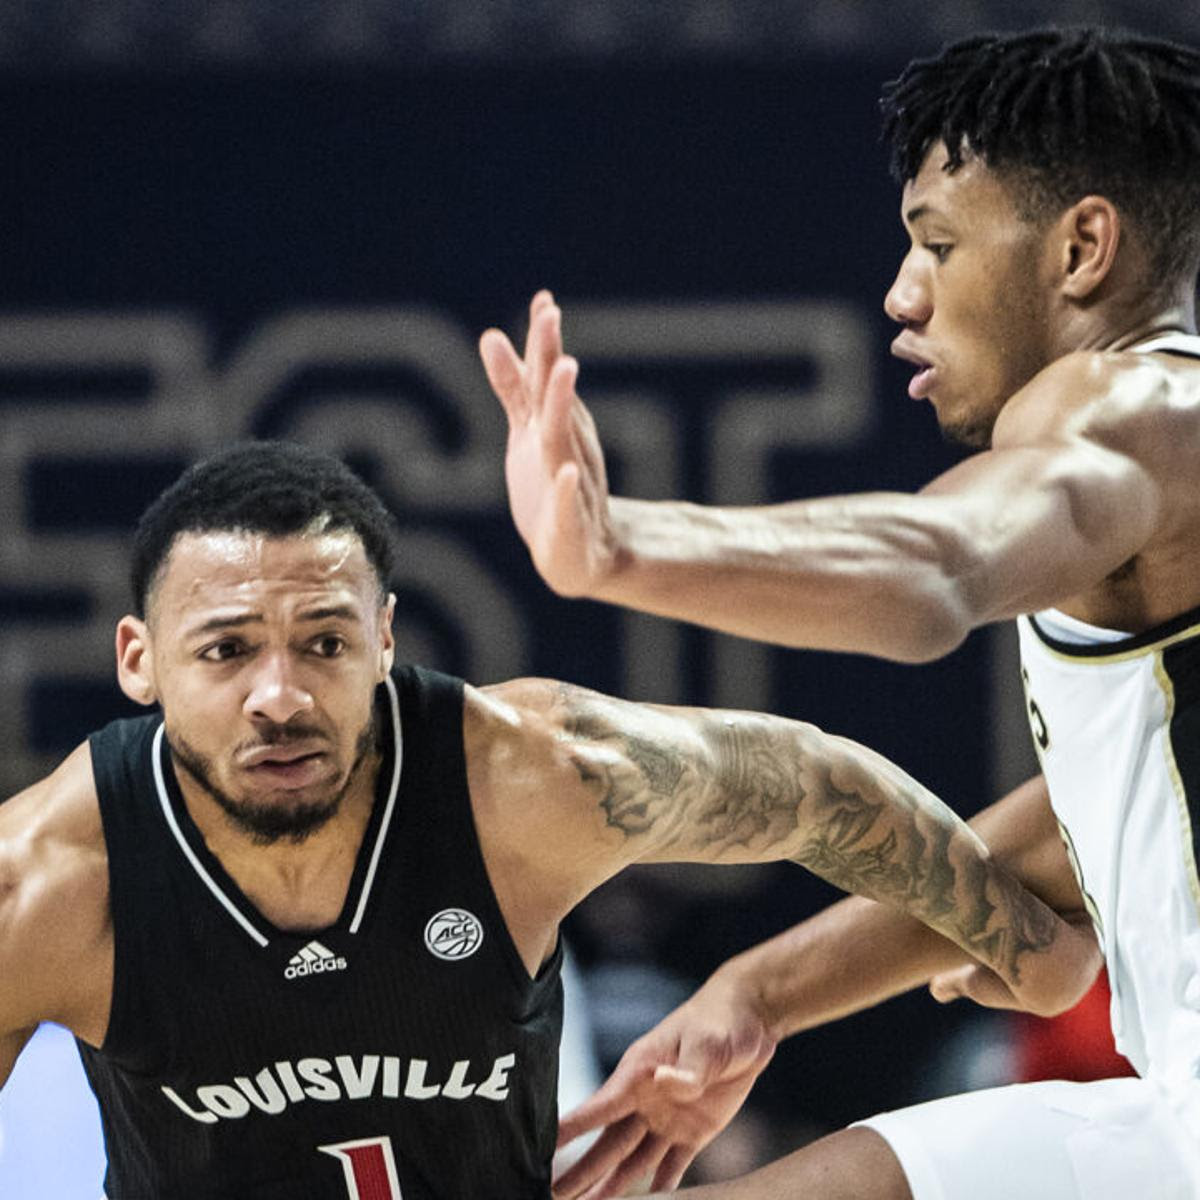 Wake Forest falls to No. 16 Louisville at home